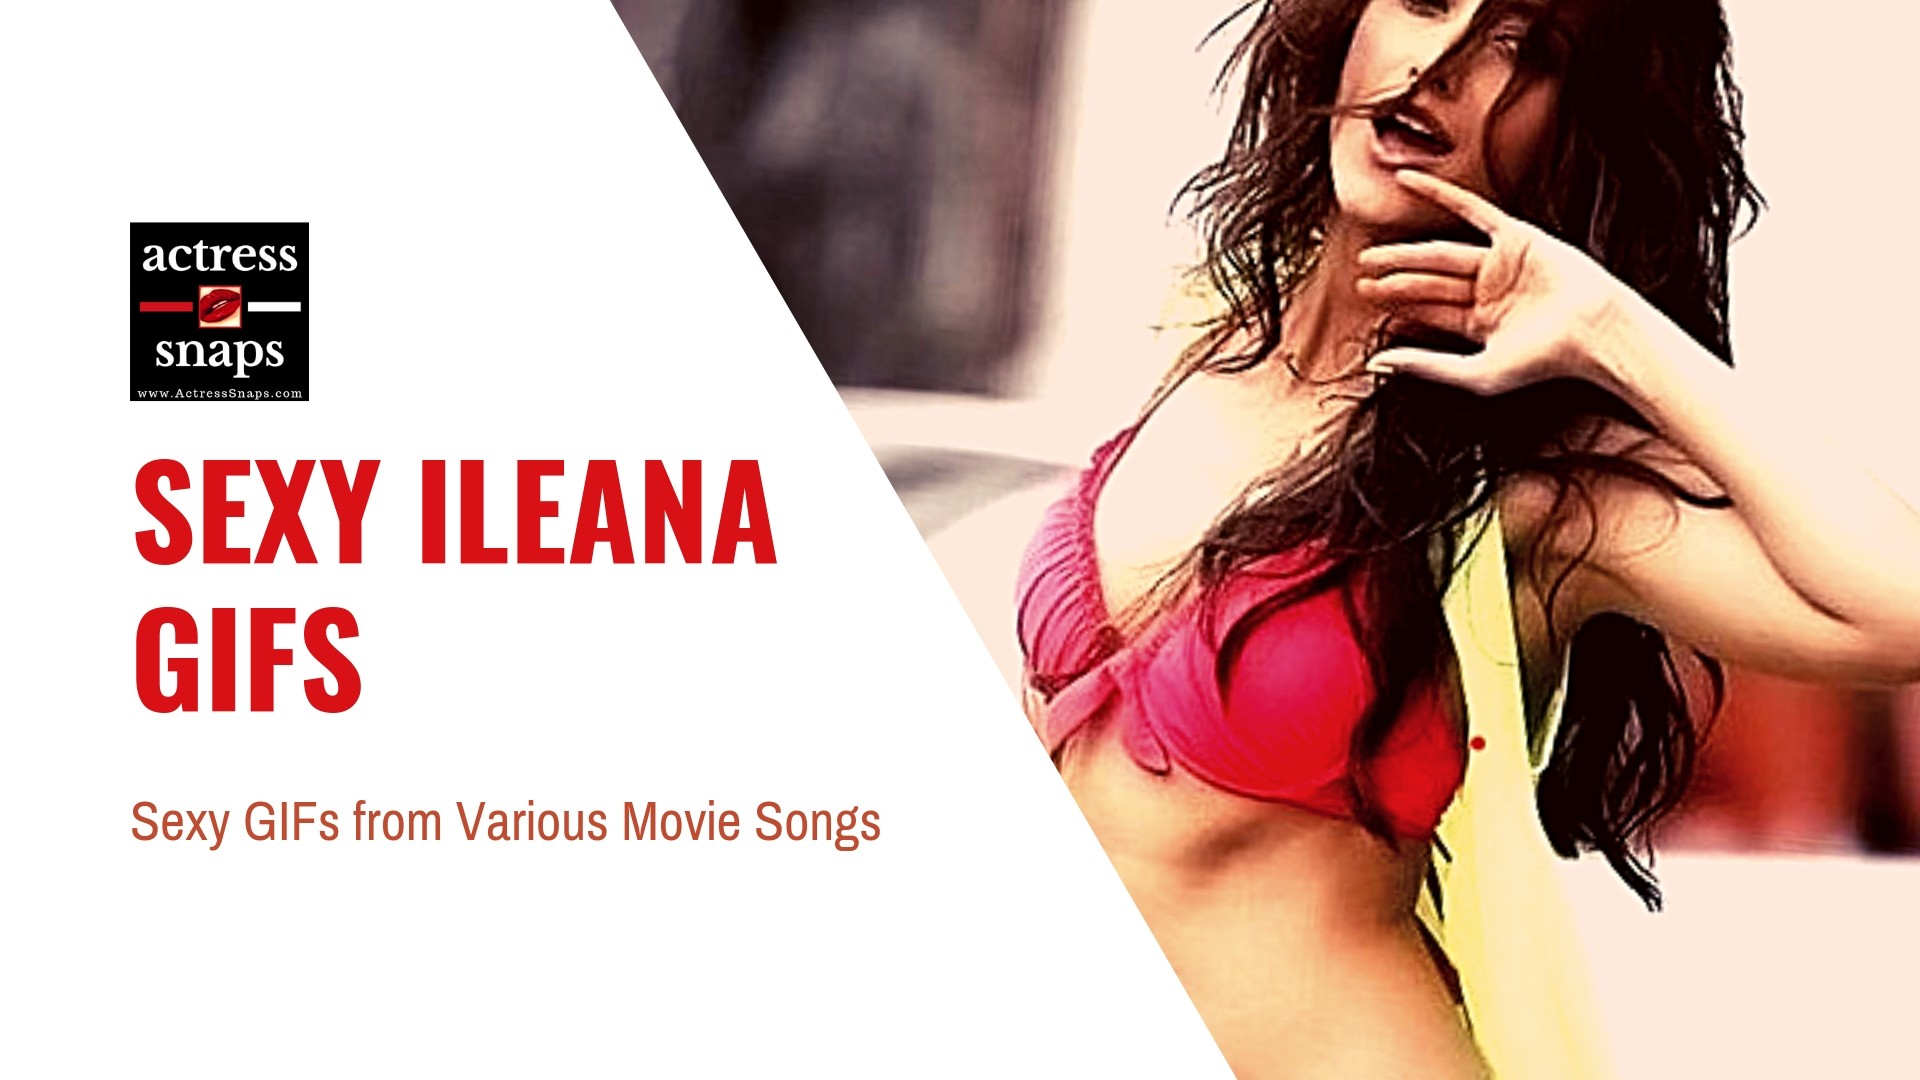 Sexy Ileana Songs GIFs - Sexy Actress Pictures | Hot Actress Pictures - ActressSnaps.com